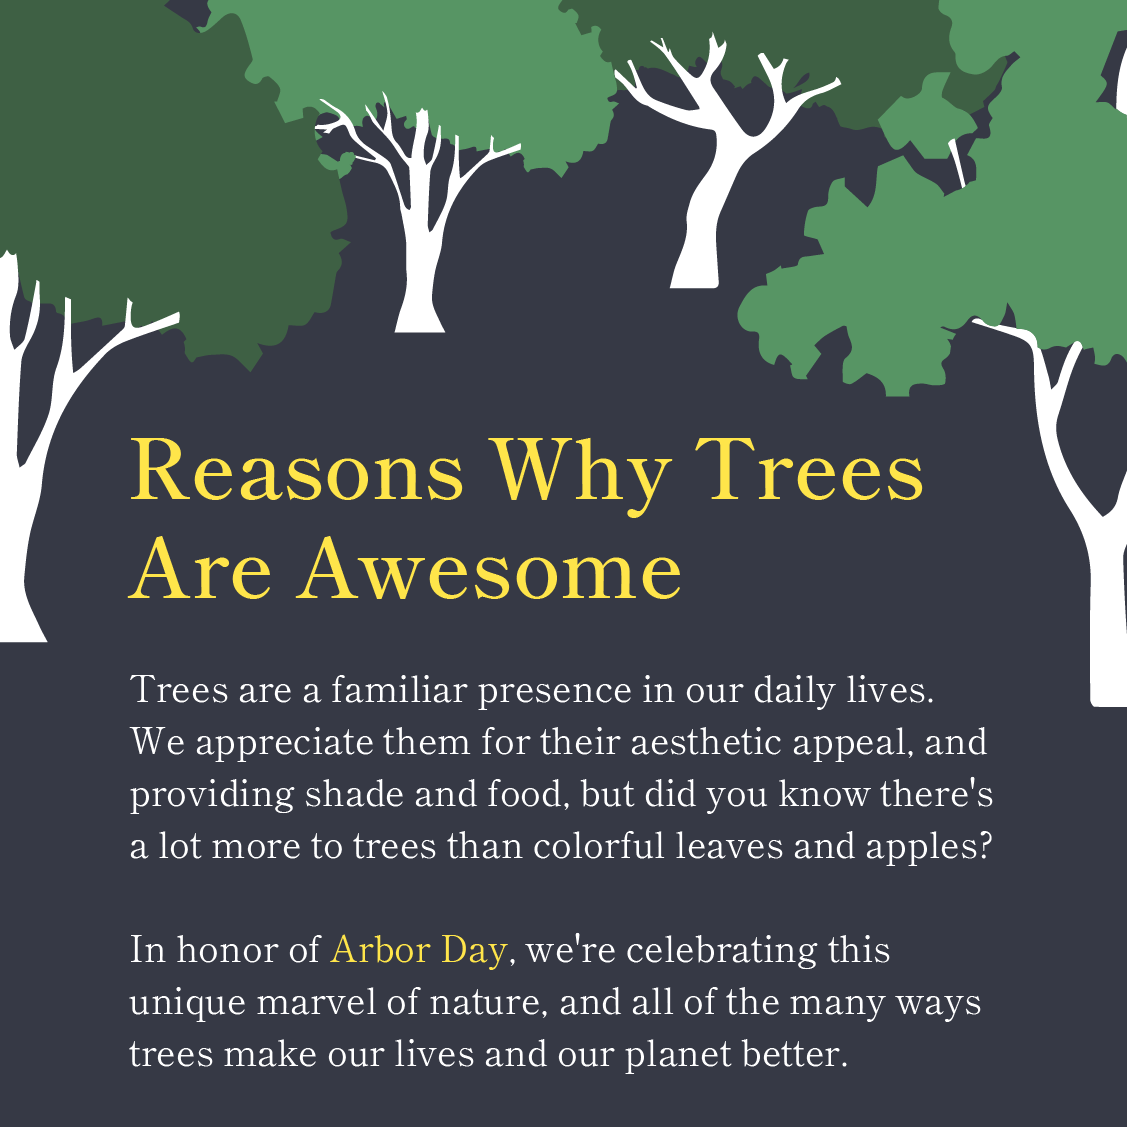 why trees are awesome 0